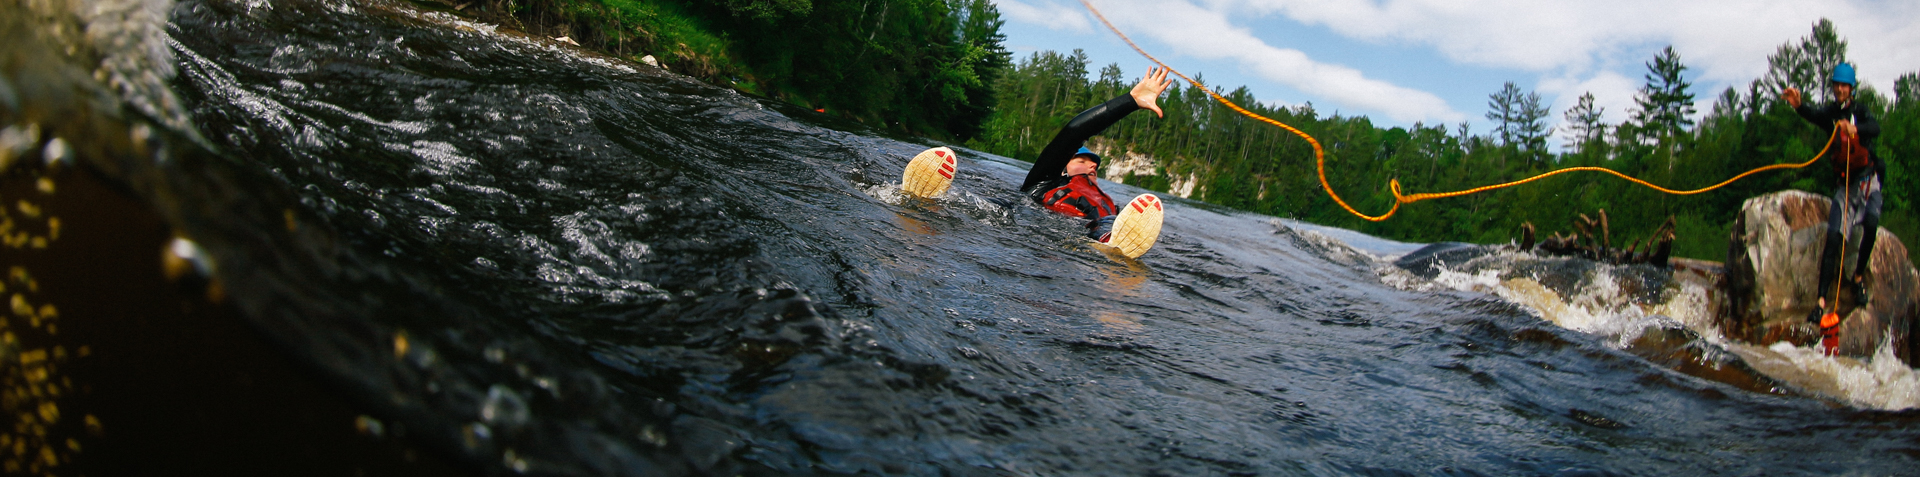 Whitewater Rescue Levels I & II - Two Day Course by Boreal River Rescue - Image 364